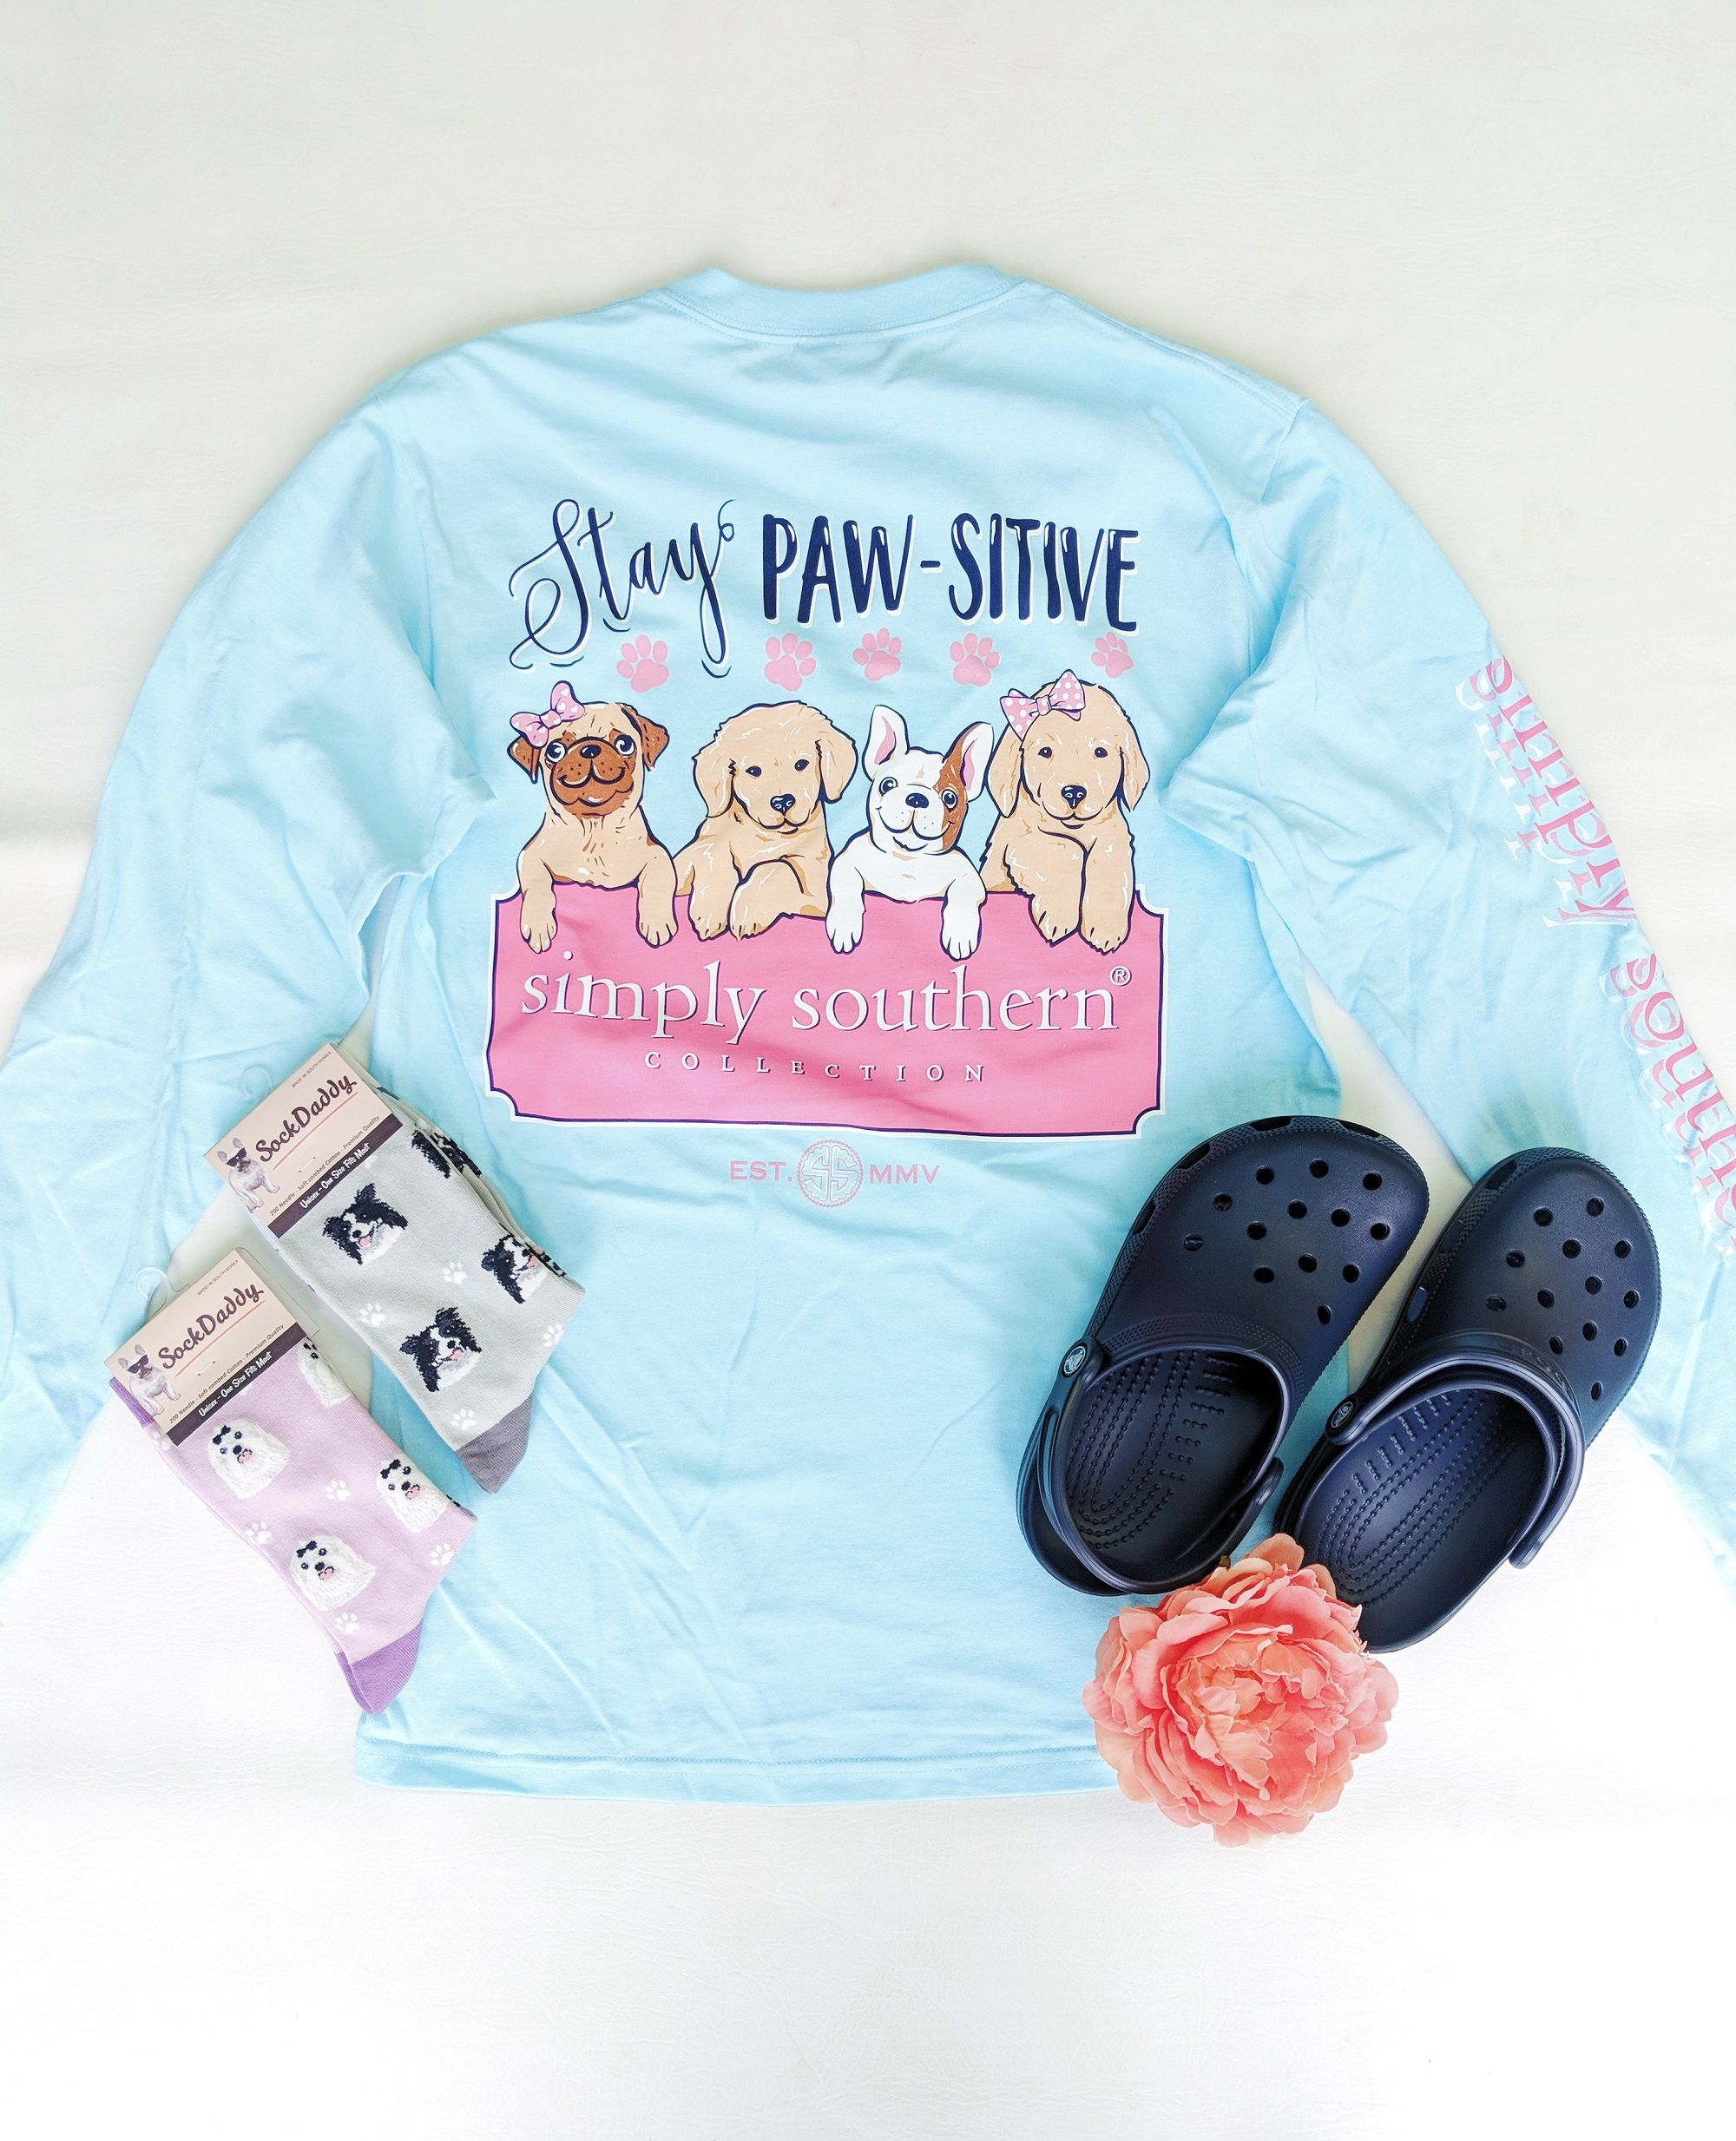 Simply Southern Pawsitive Tee In 2020 Simply Southern Shirts